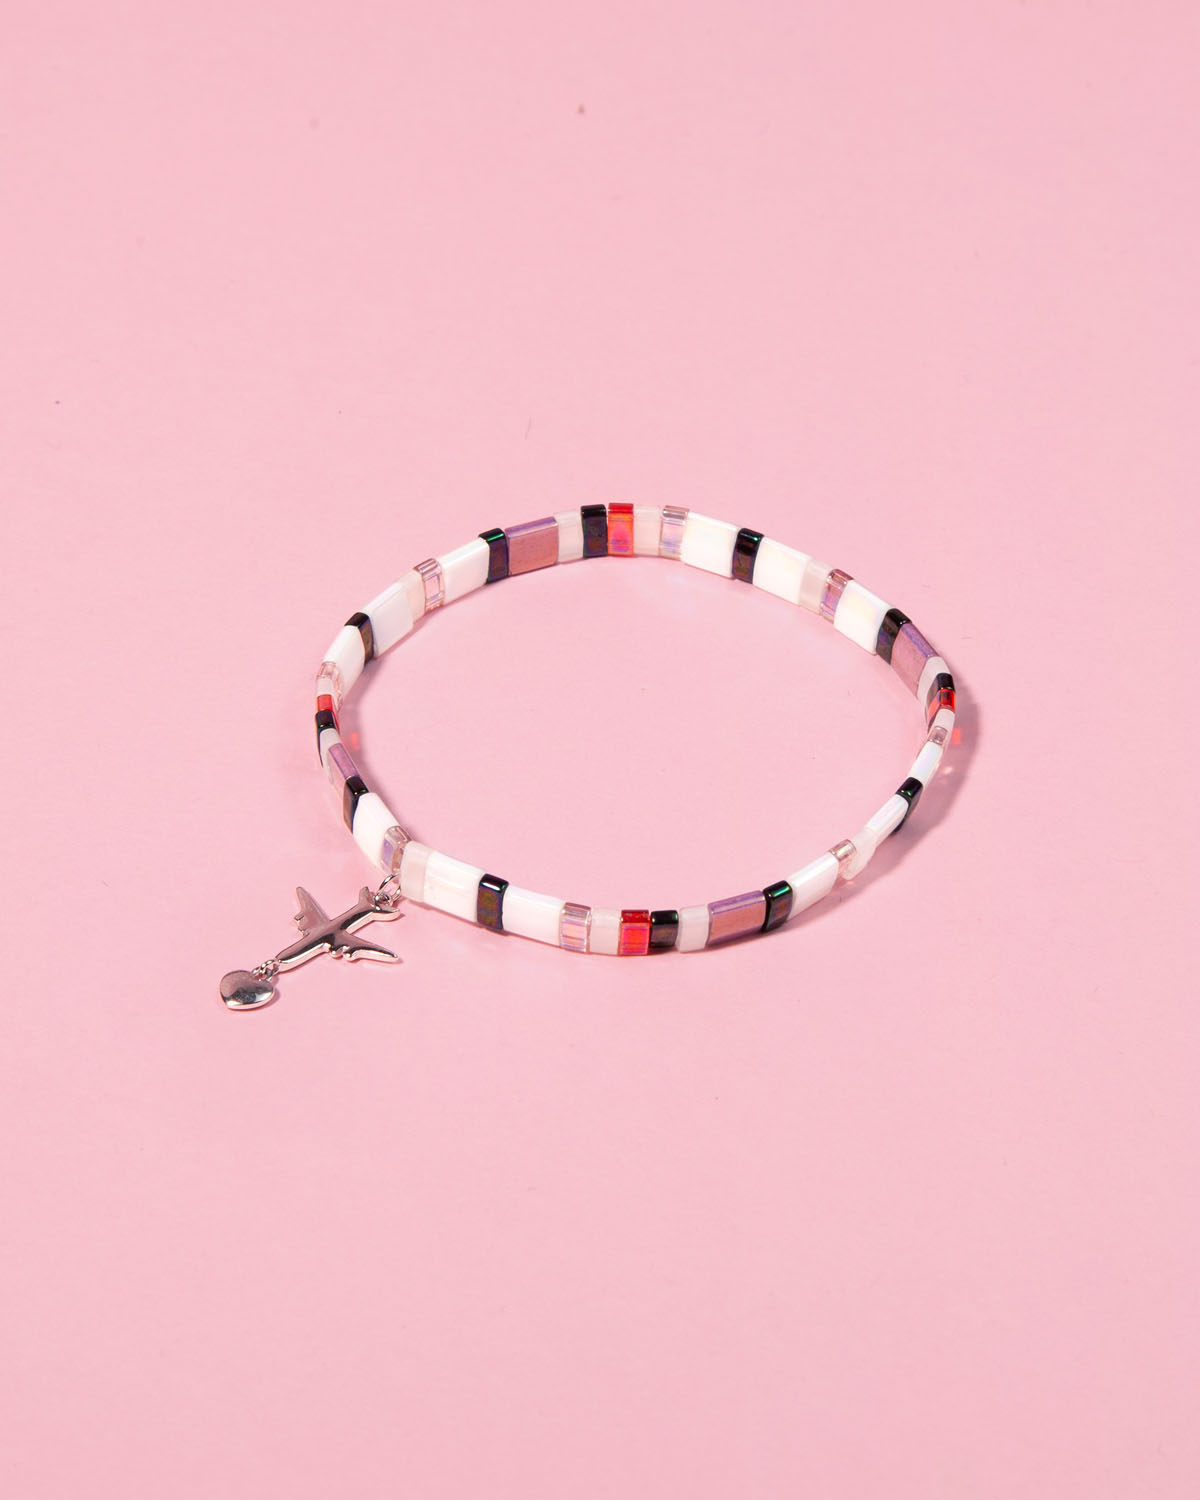 The Airplane Caramel Bracelet in Berry Merry